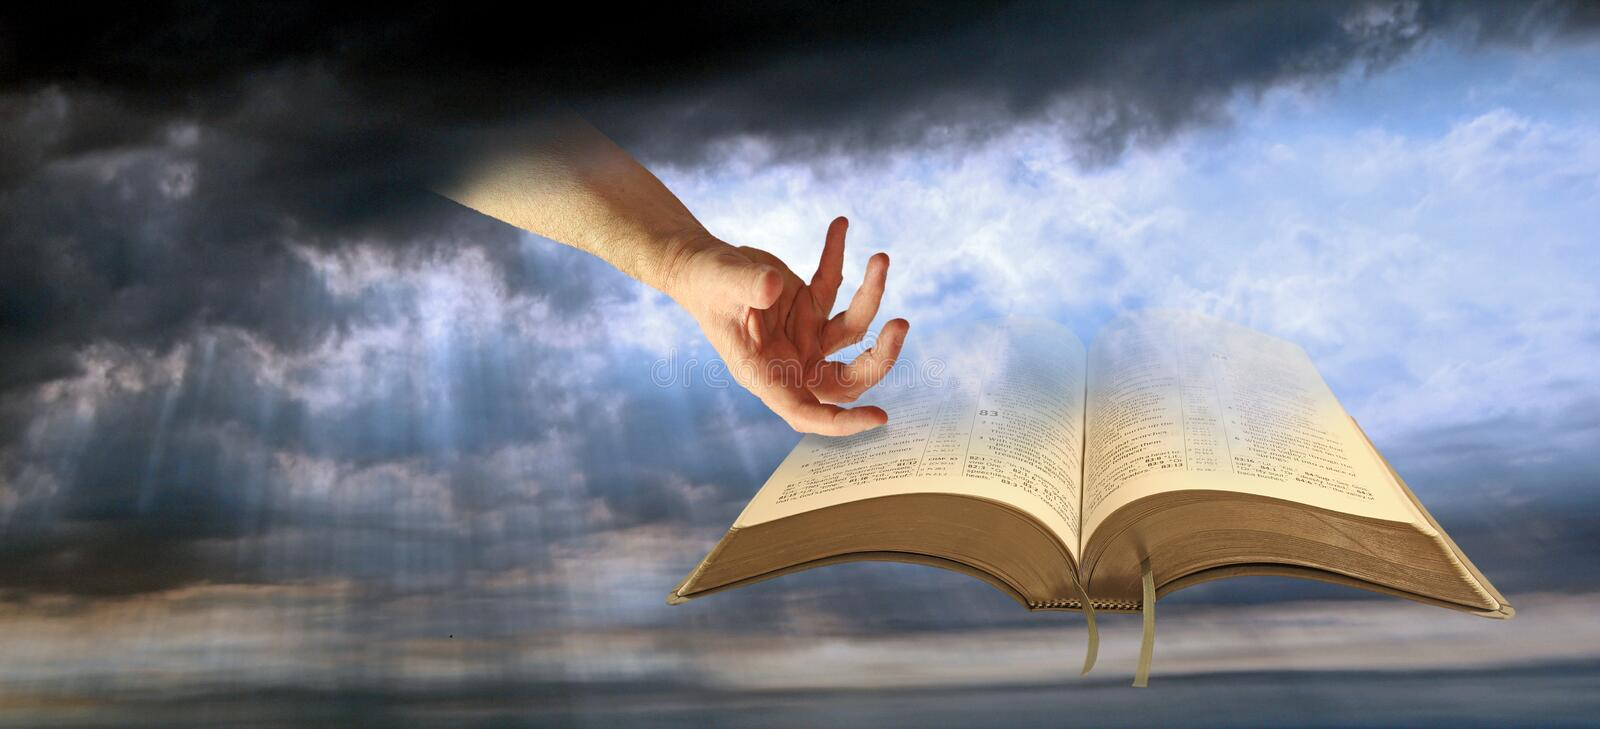 Divine hand of god open holy bible spiritual royalty free stock photography